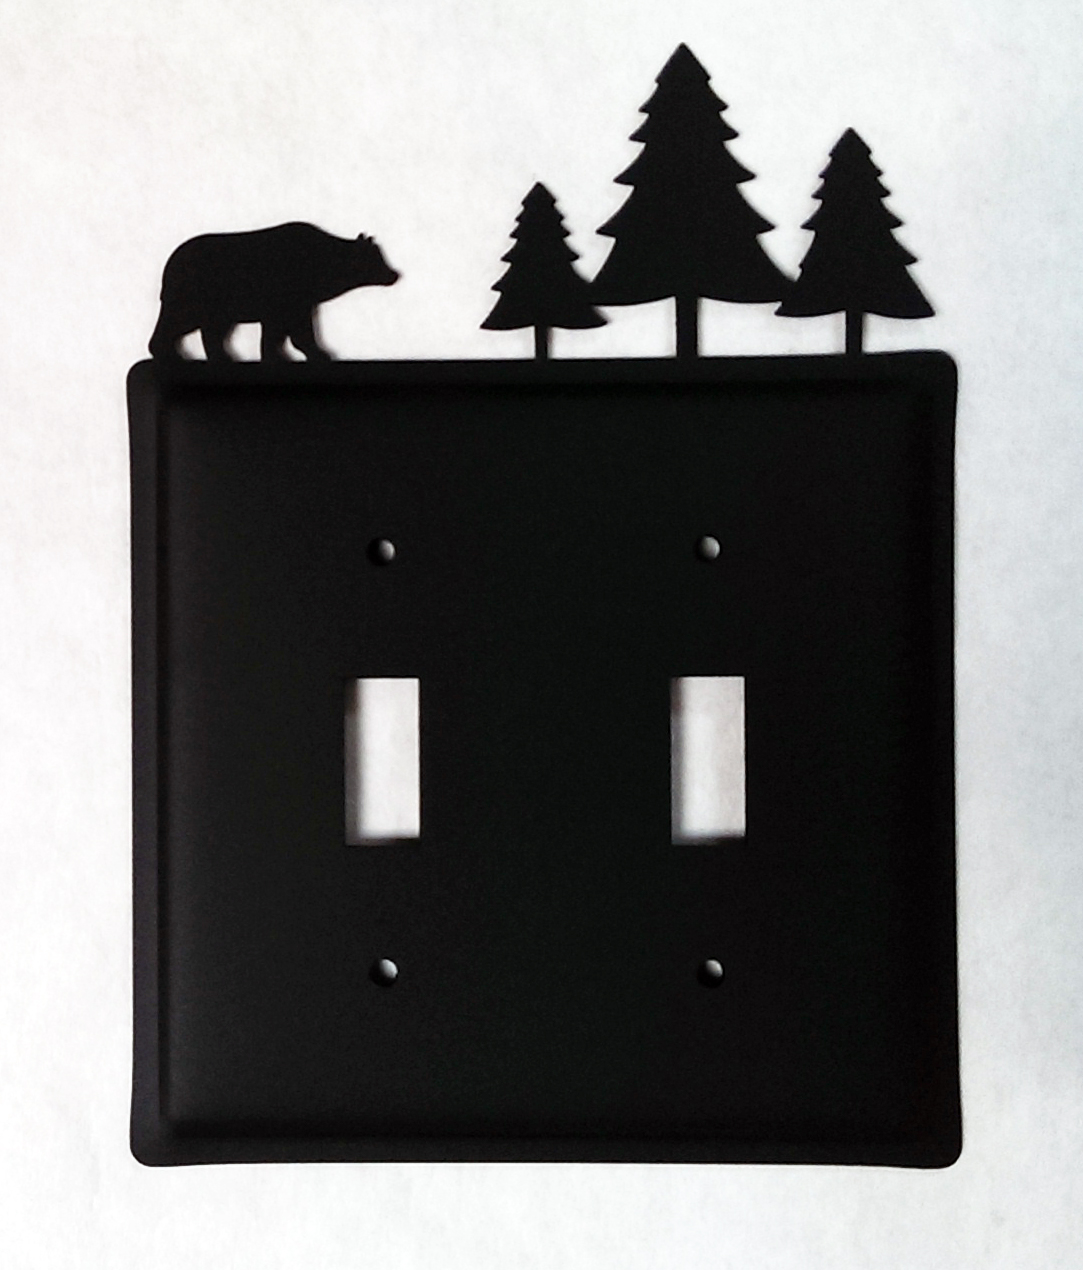 Bear & Pine Trees Switch Cover Double